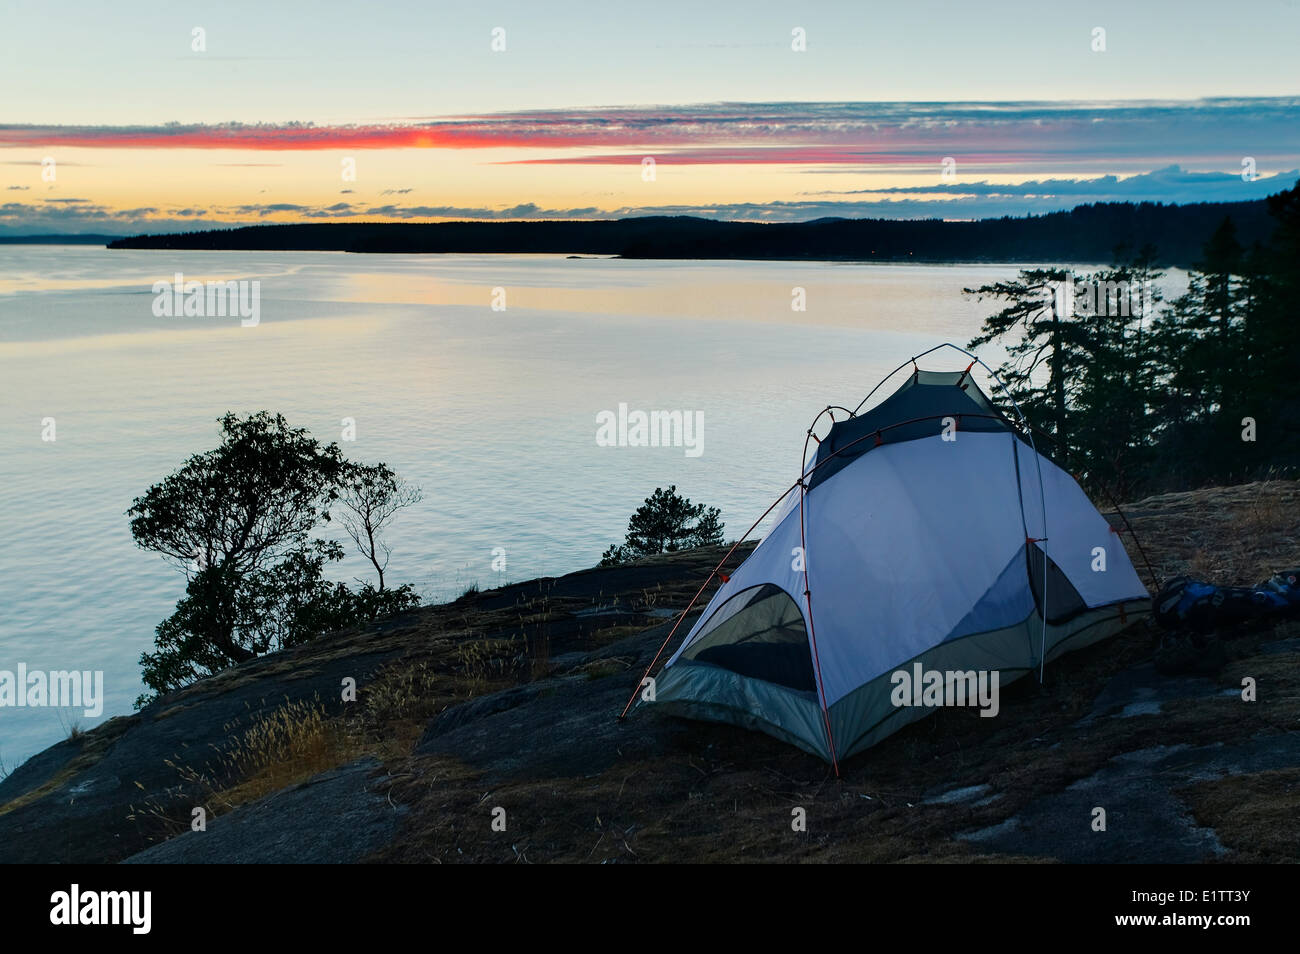 Evening sets over Stillwater Bluffs and Georgia Strait, Powell River, The Sunshine Coast, British Columbia, Canada - Stock Image